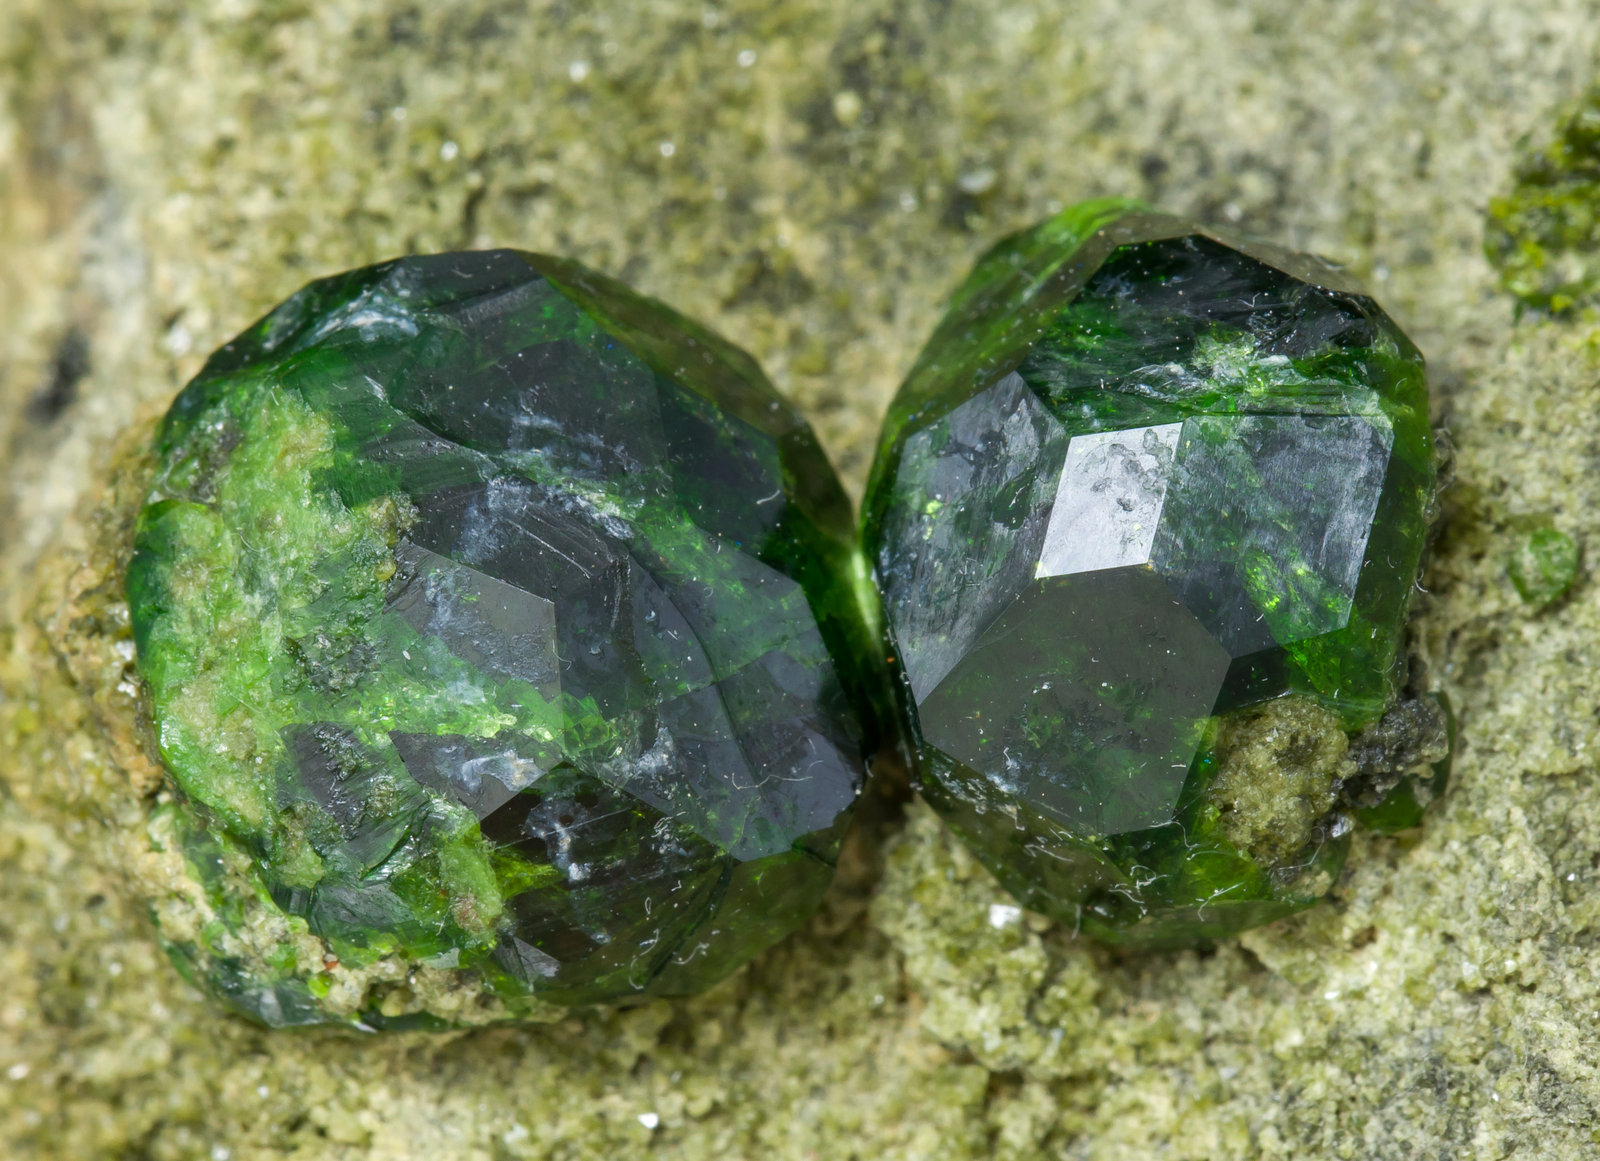 specimens/s_imagesAE0/Andradite_demantoid-ER27AE0d.jpg